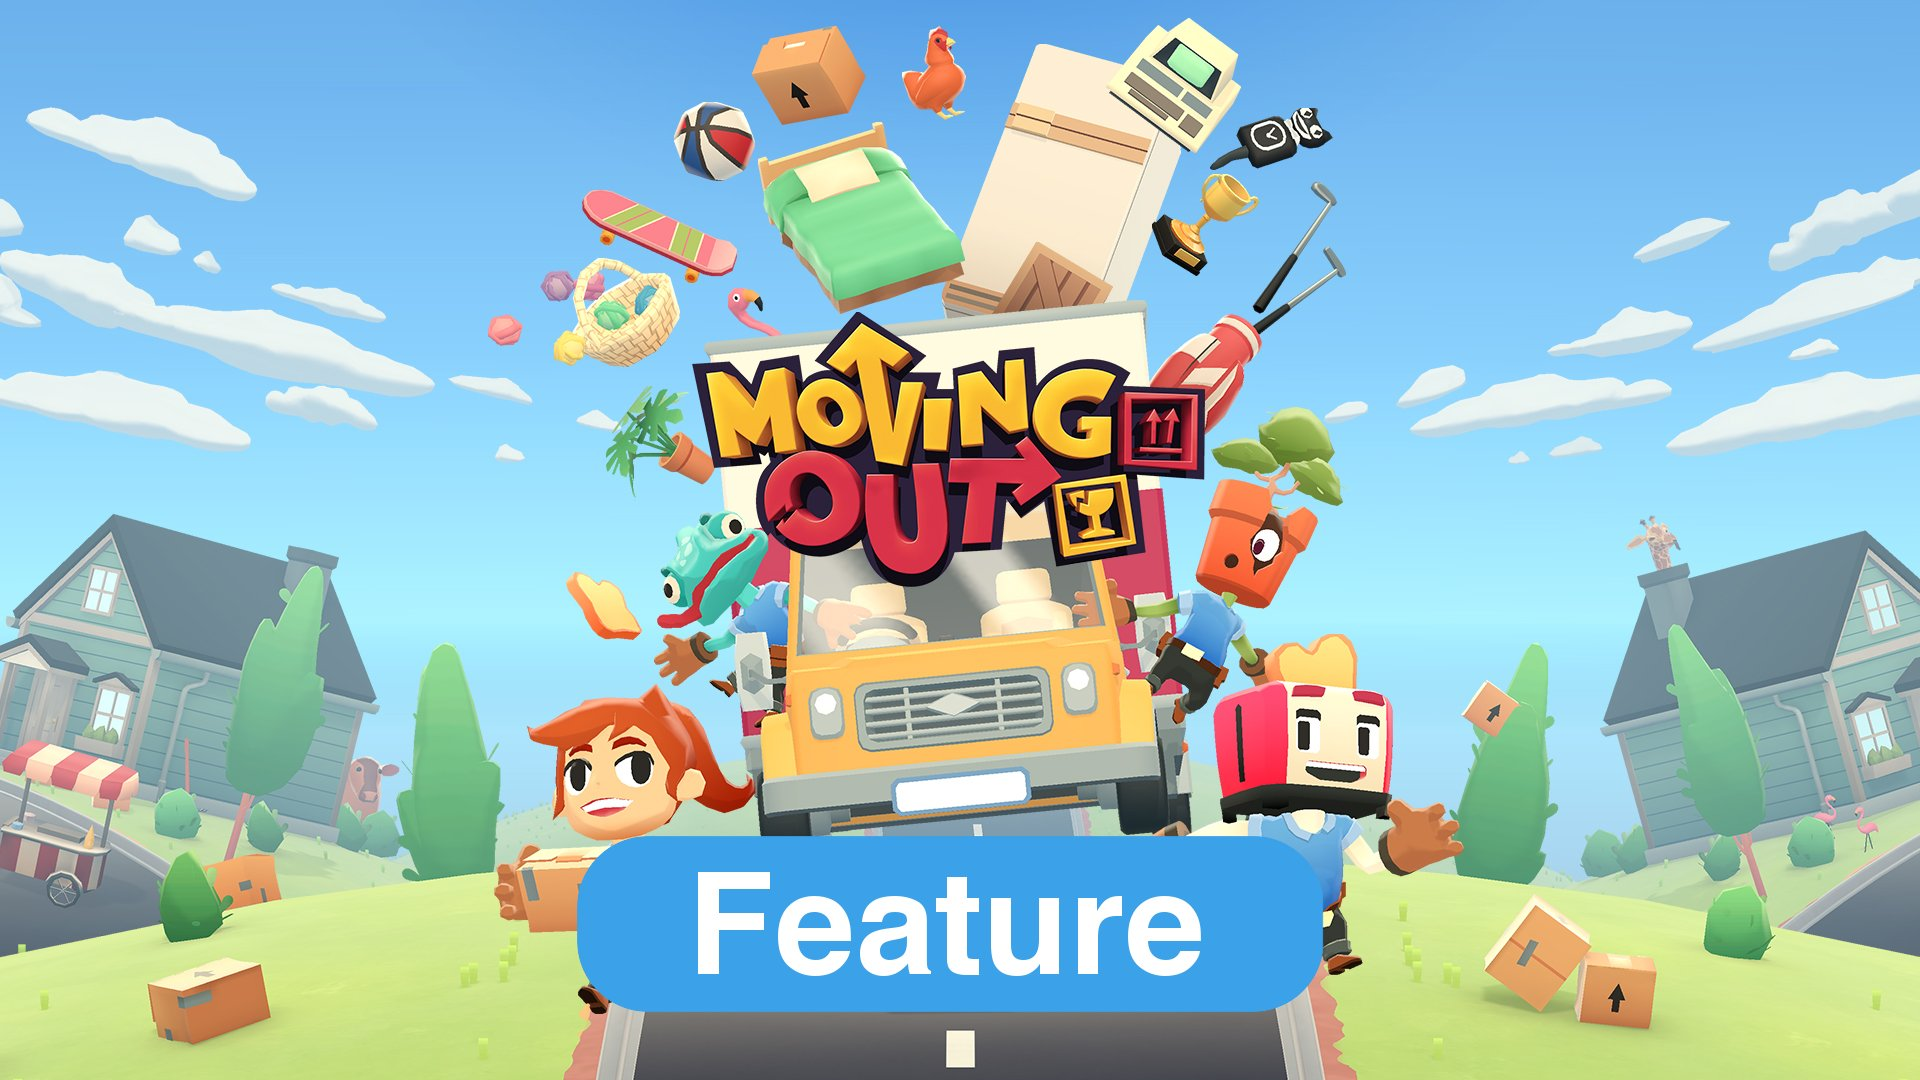 Moving Out Game Feature